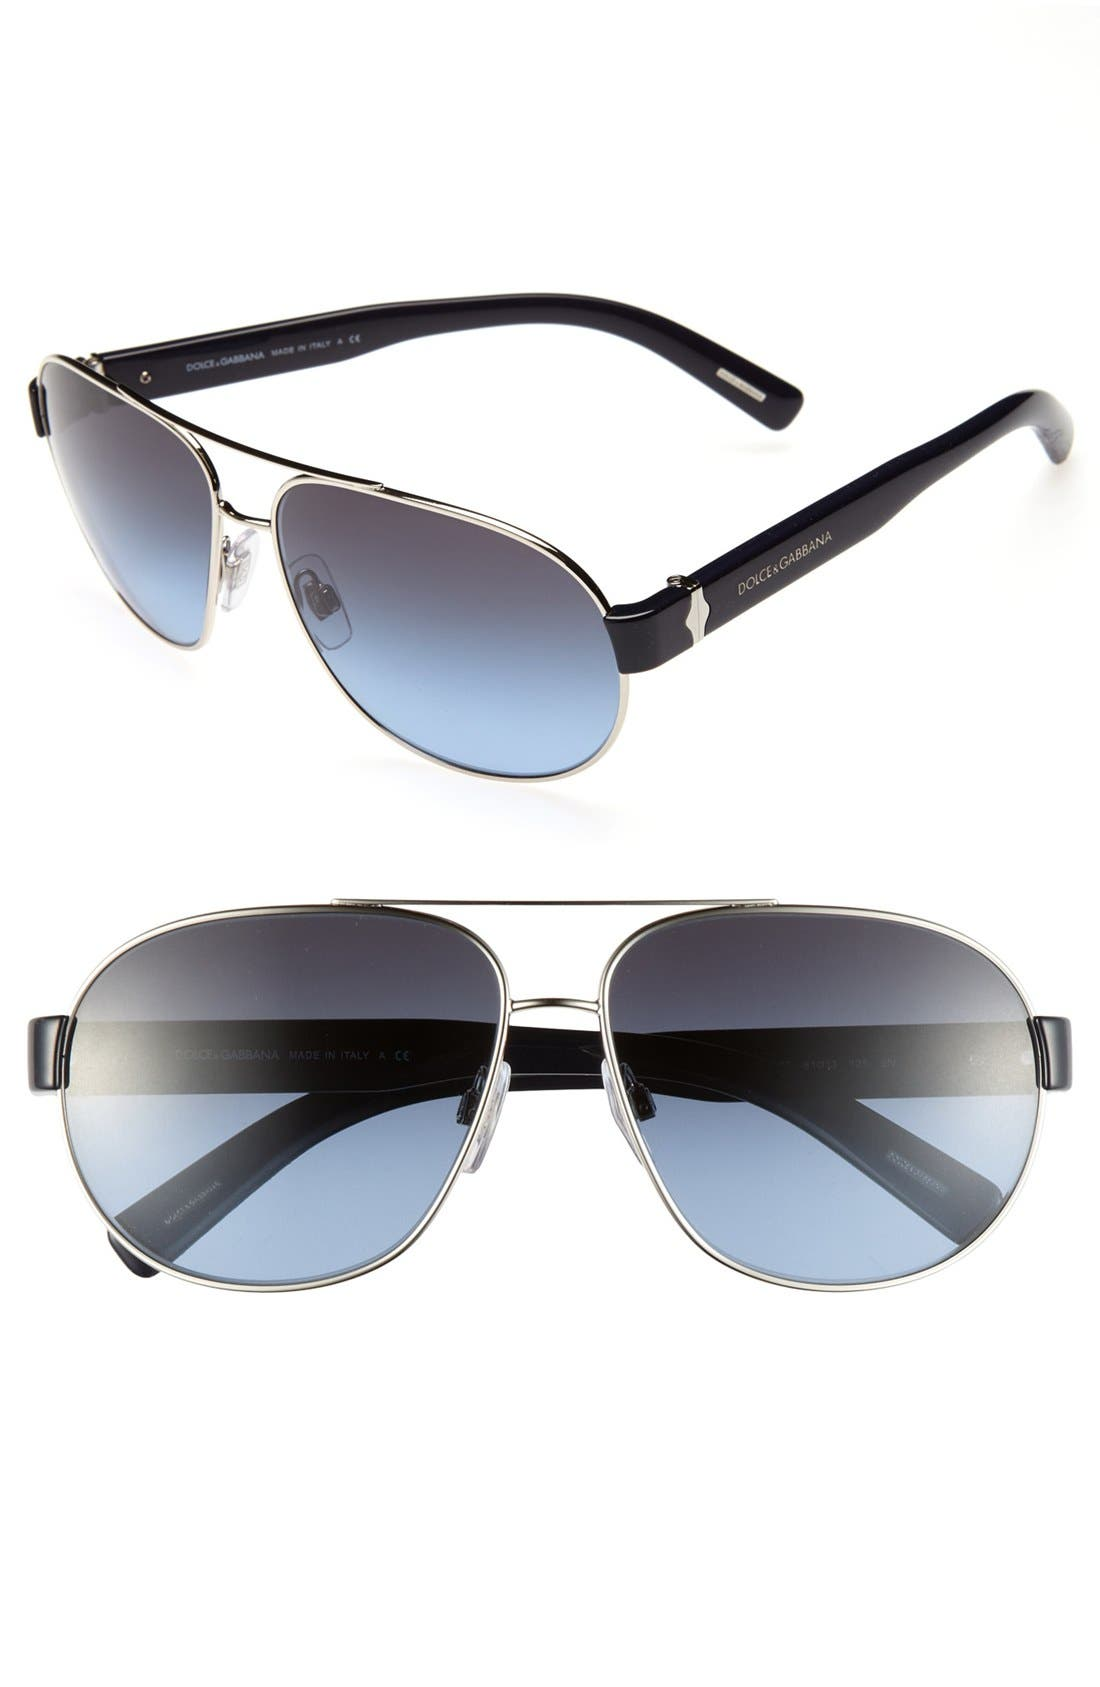 Main Image - Dolce&Gabbana 61mm Aviator Sunglasses